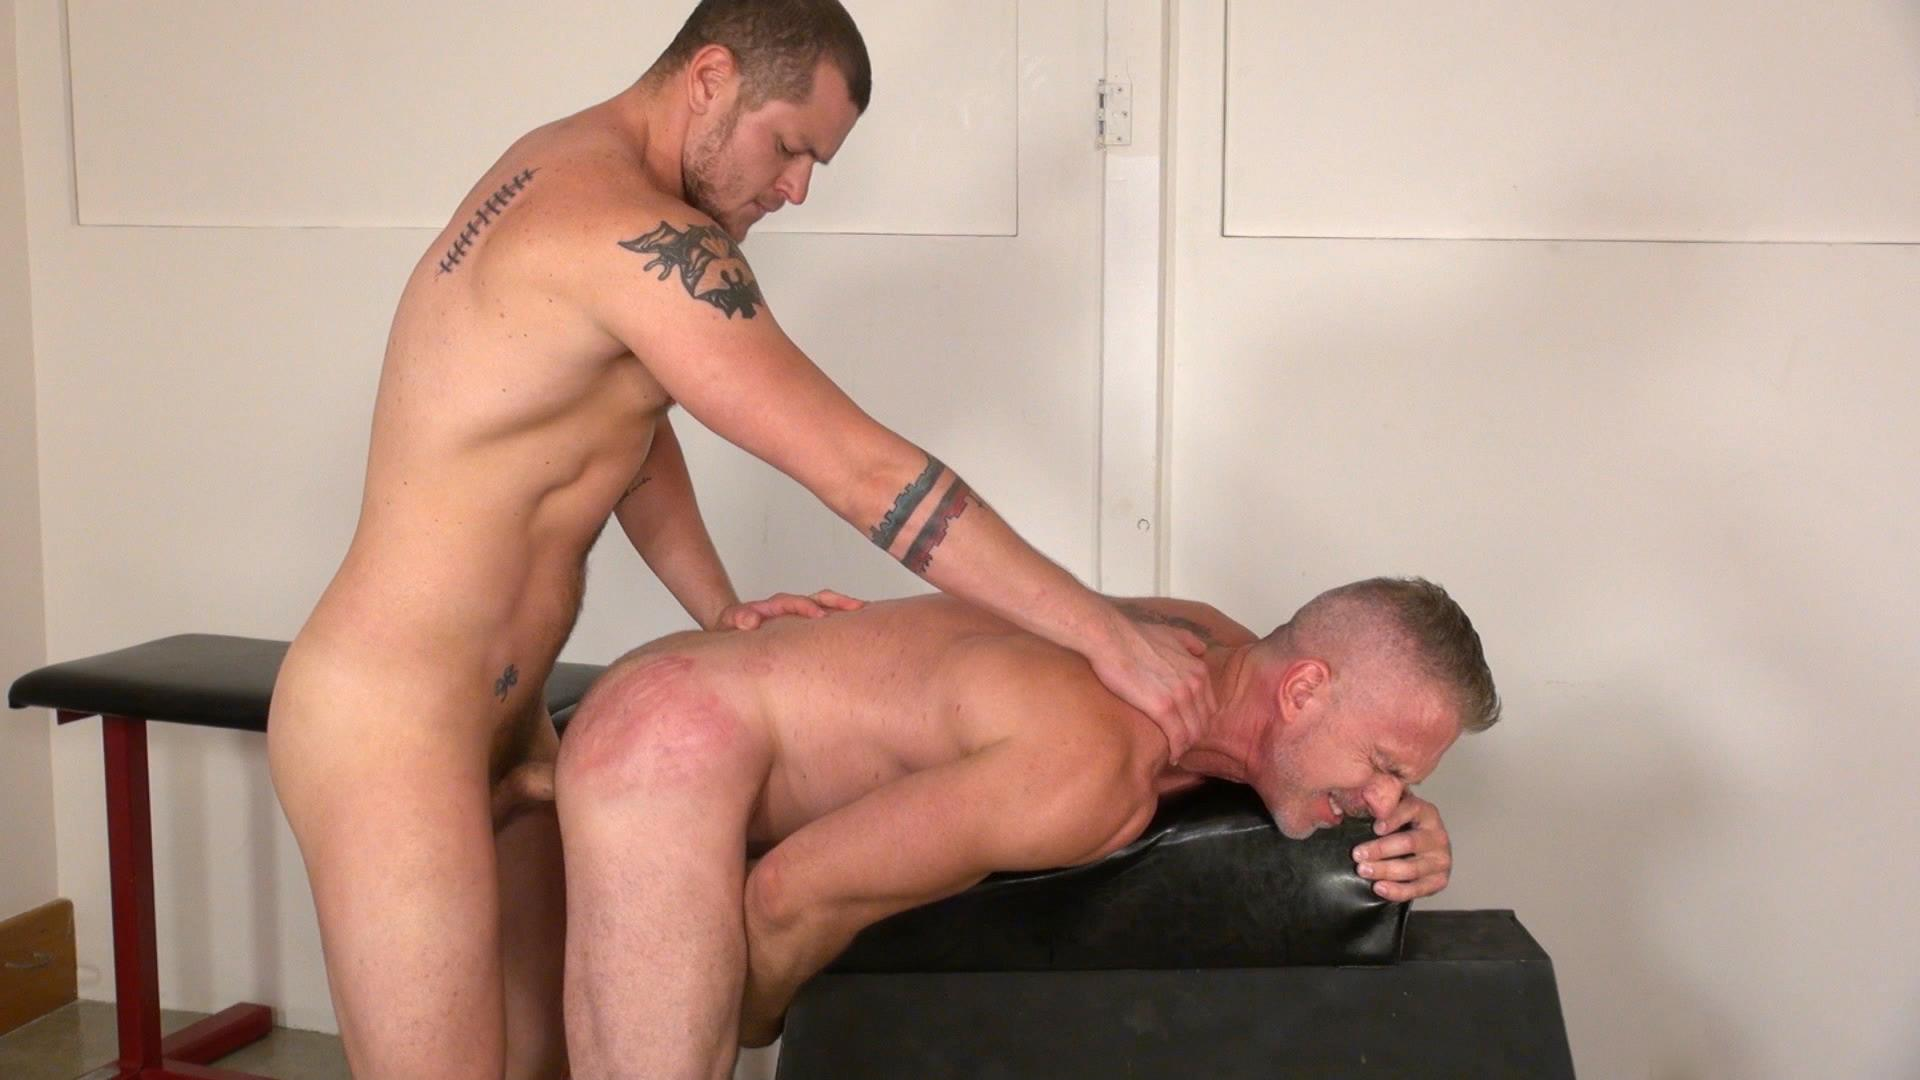 Raw-and-Rough-Sam-Dixon-and-Blue-Bailey-Daddy-And-Boy-Flip-Flip-Bareback-Fucking-Amateur-Gay-Porn-10 Blue Bailey Flip Flop Barebacking With A Hung Daddy